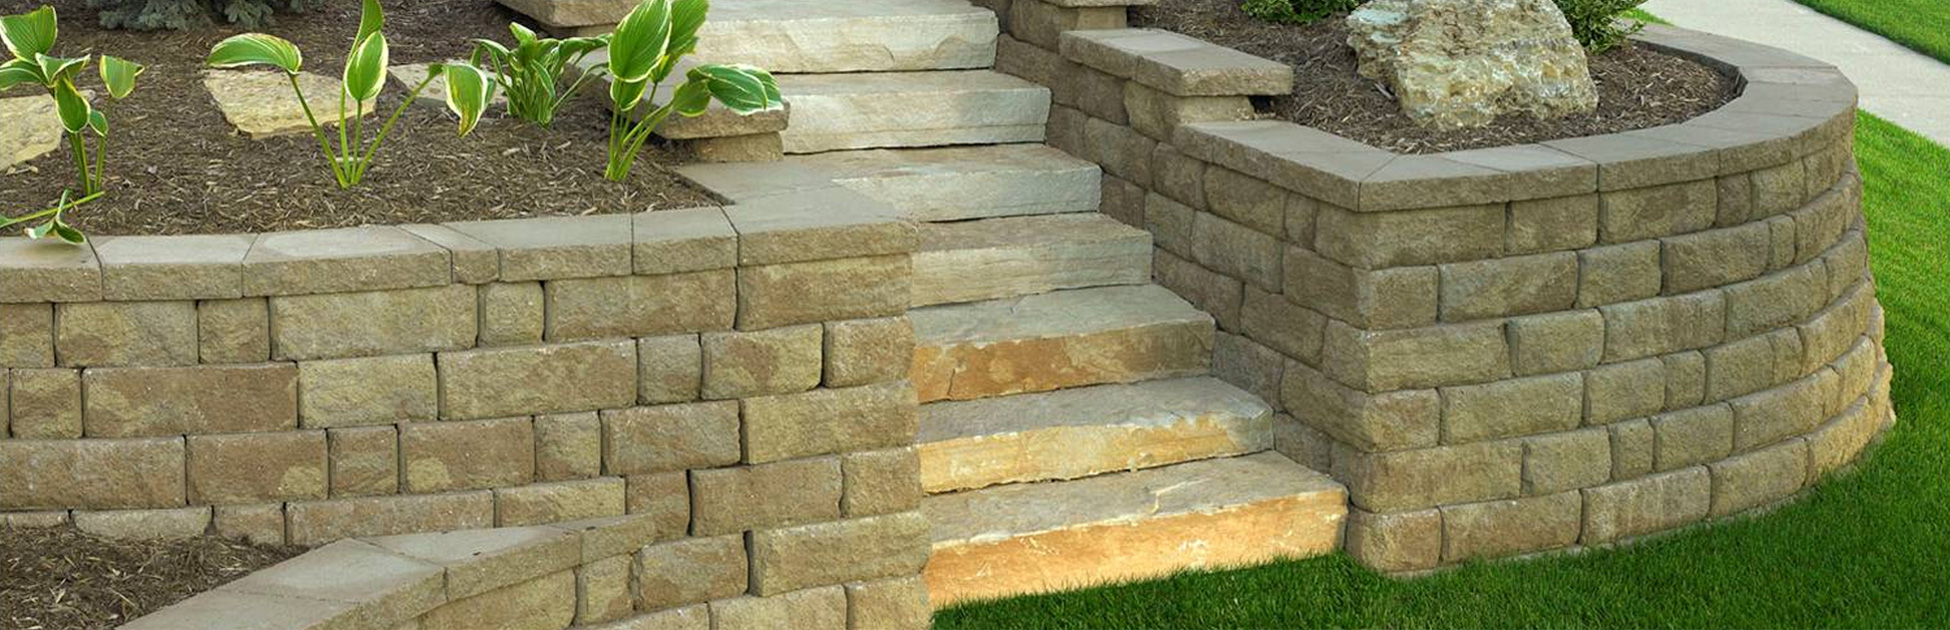 concrete stone walls and steps